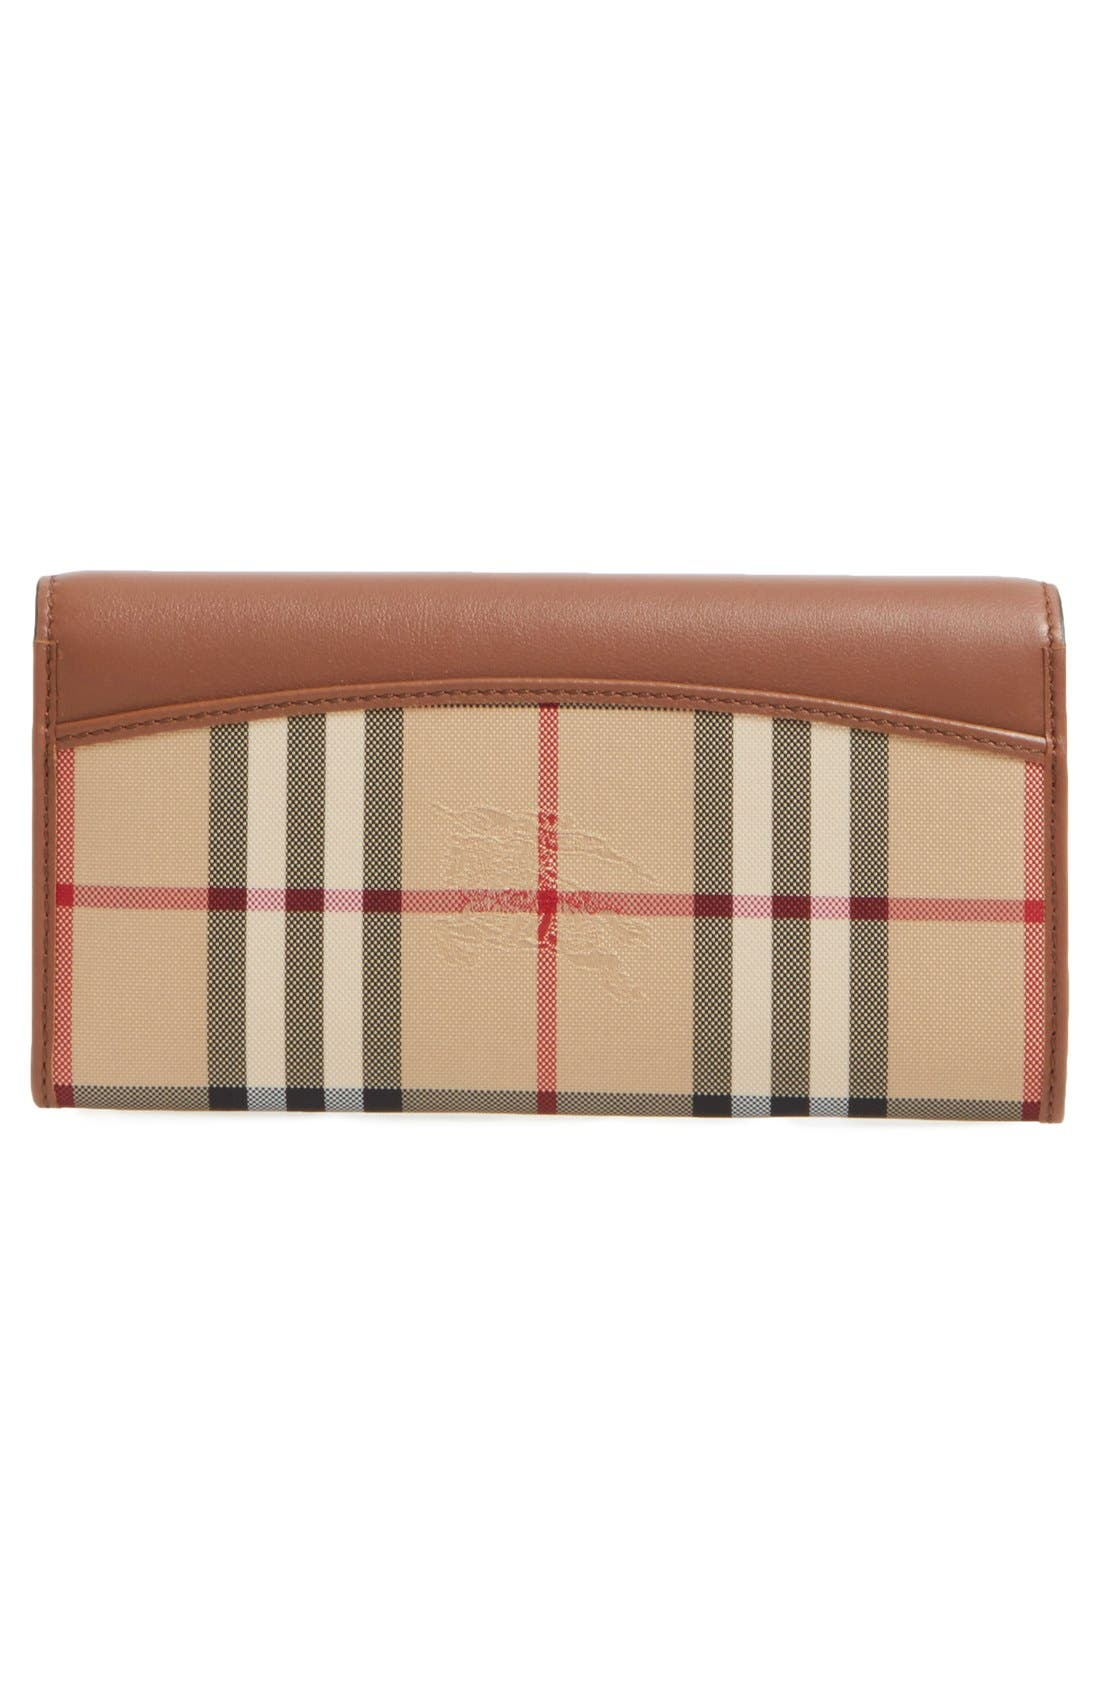 'Porter - Horseferry Check' Continental Wallet,                             Alternate thumbnail 6, color,                             216